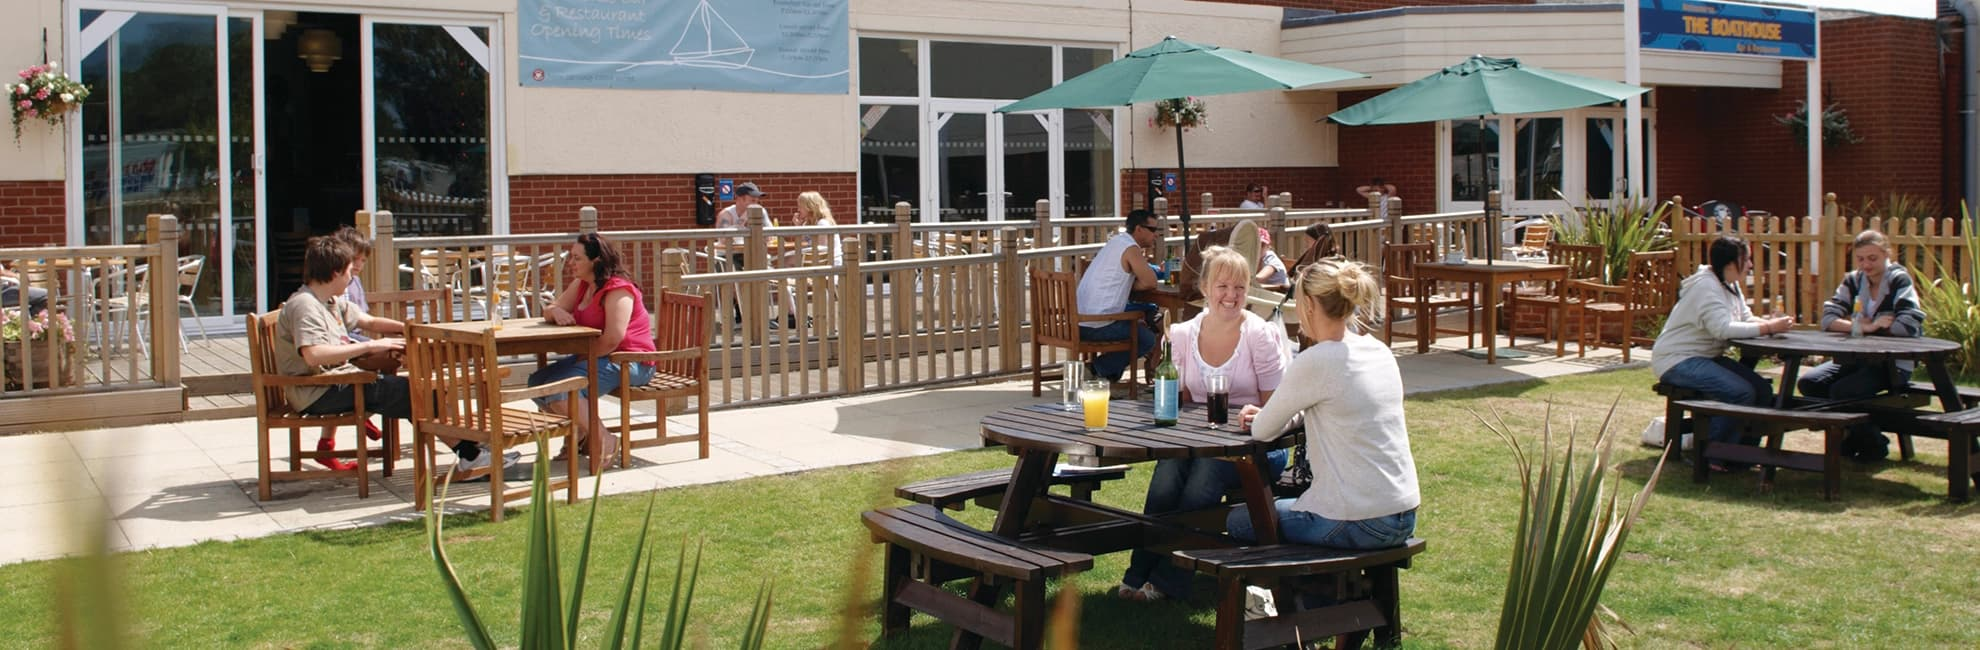 People relaxing in the beer garden at Highfield Grange Holiday Park